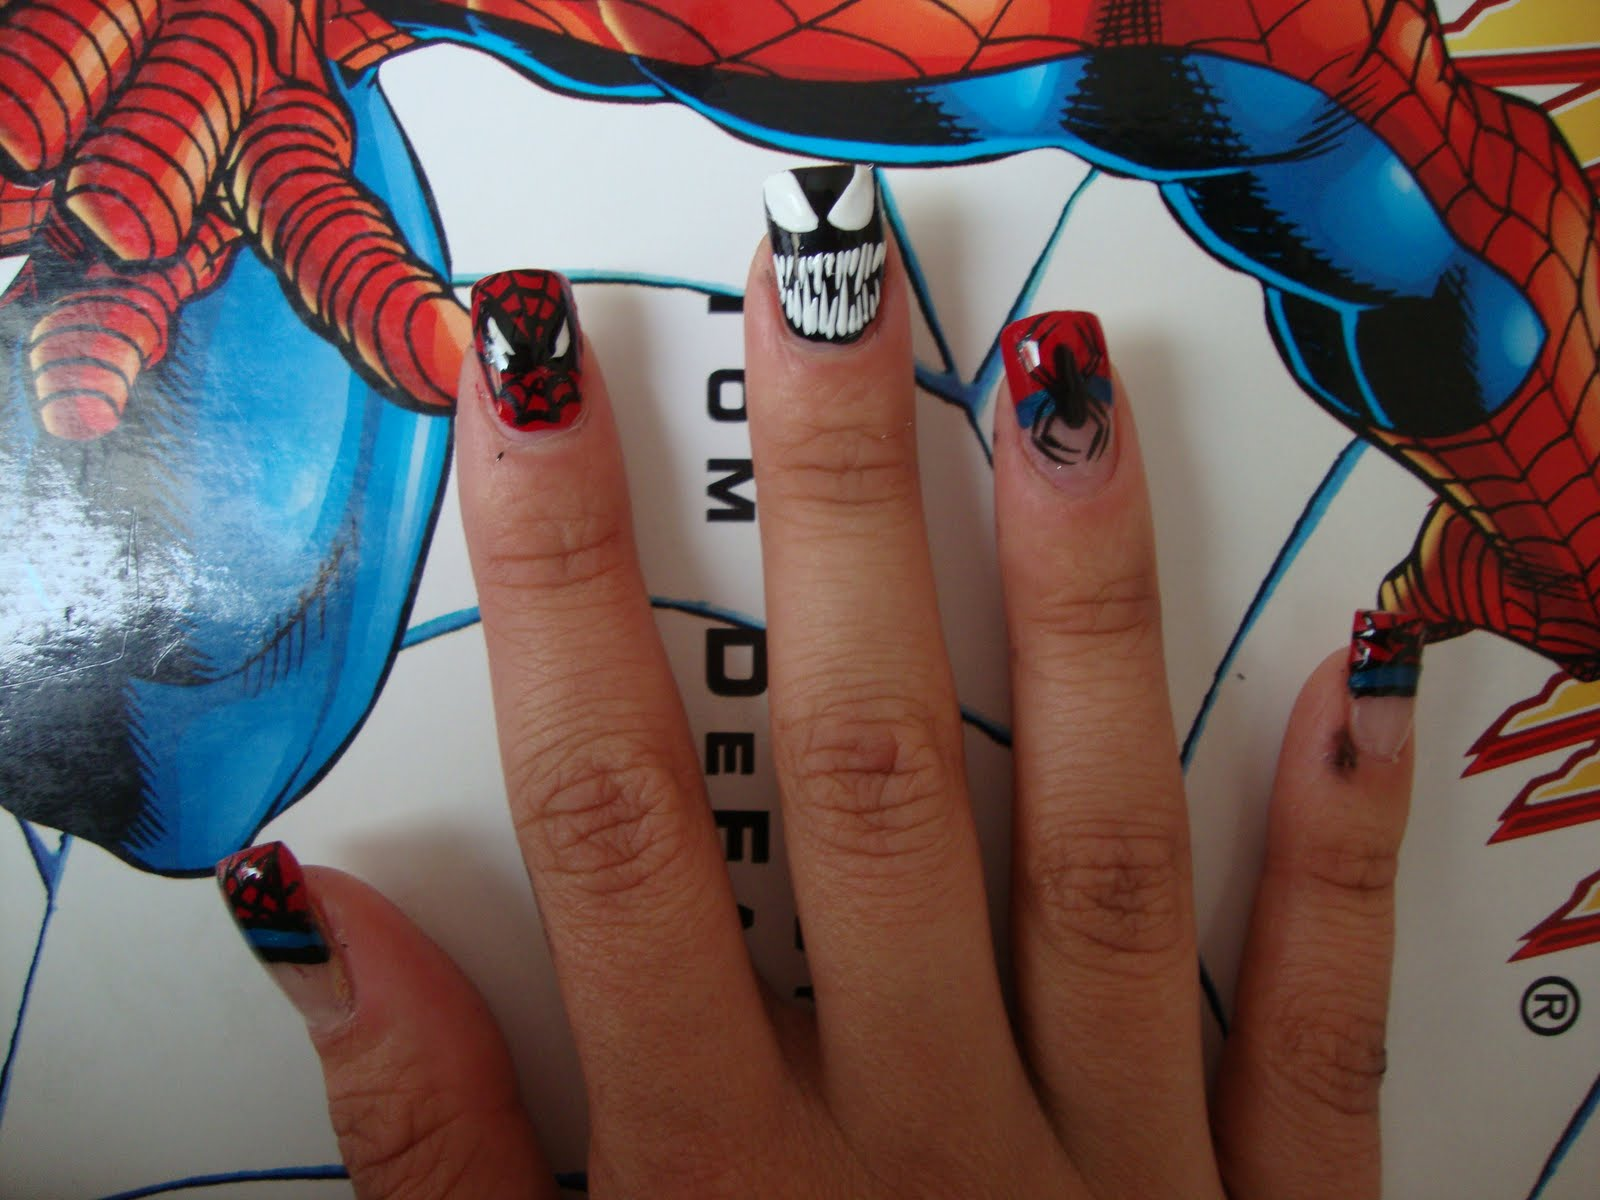 Obsessed spiderman spiderman who love spiderman and venom in the background you can see some sketches of the venom smiley face and the atoms from the science nail designs prinsesfo Choice Image